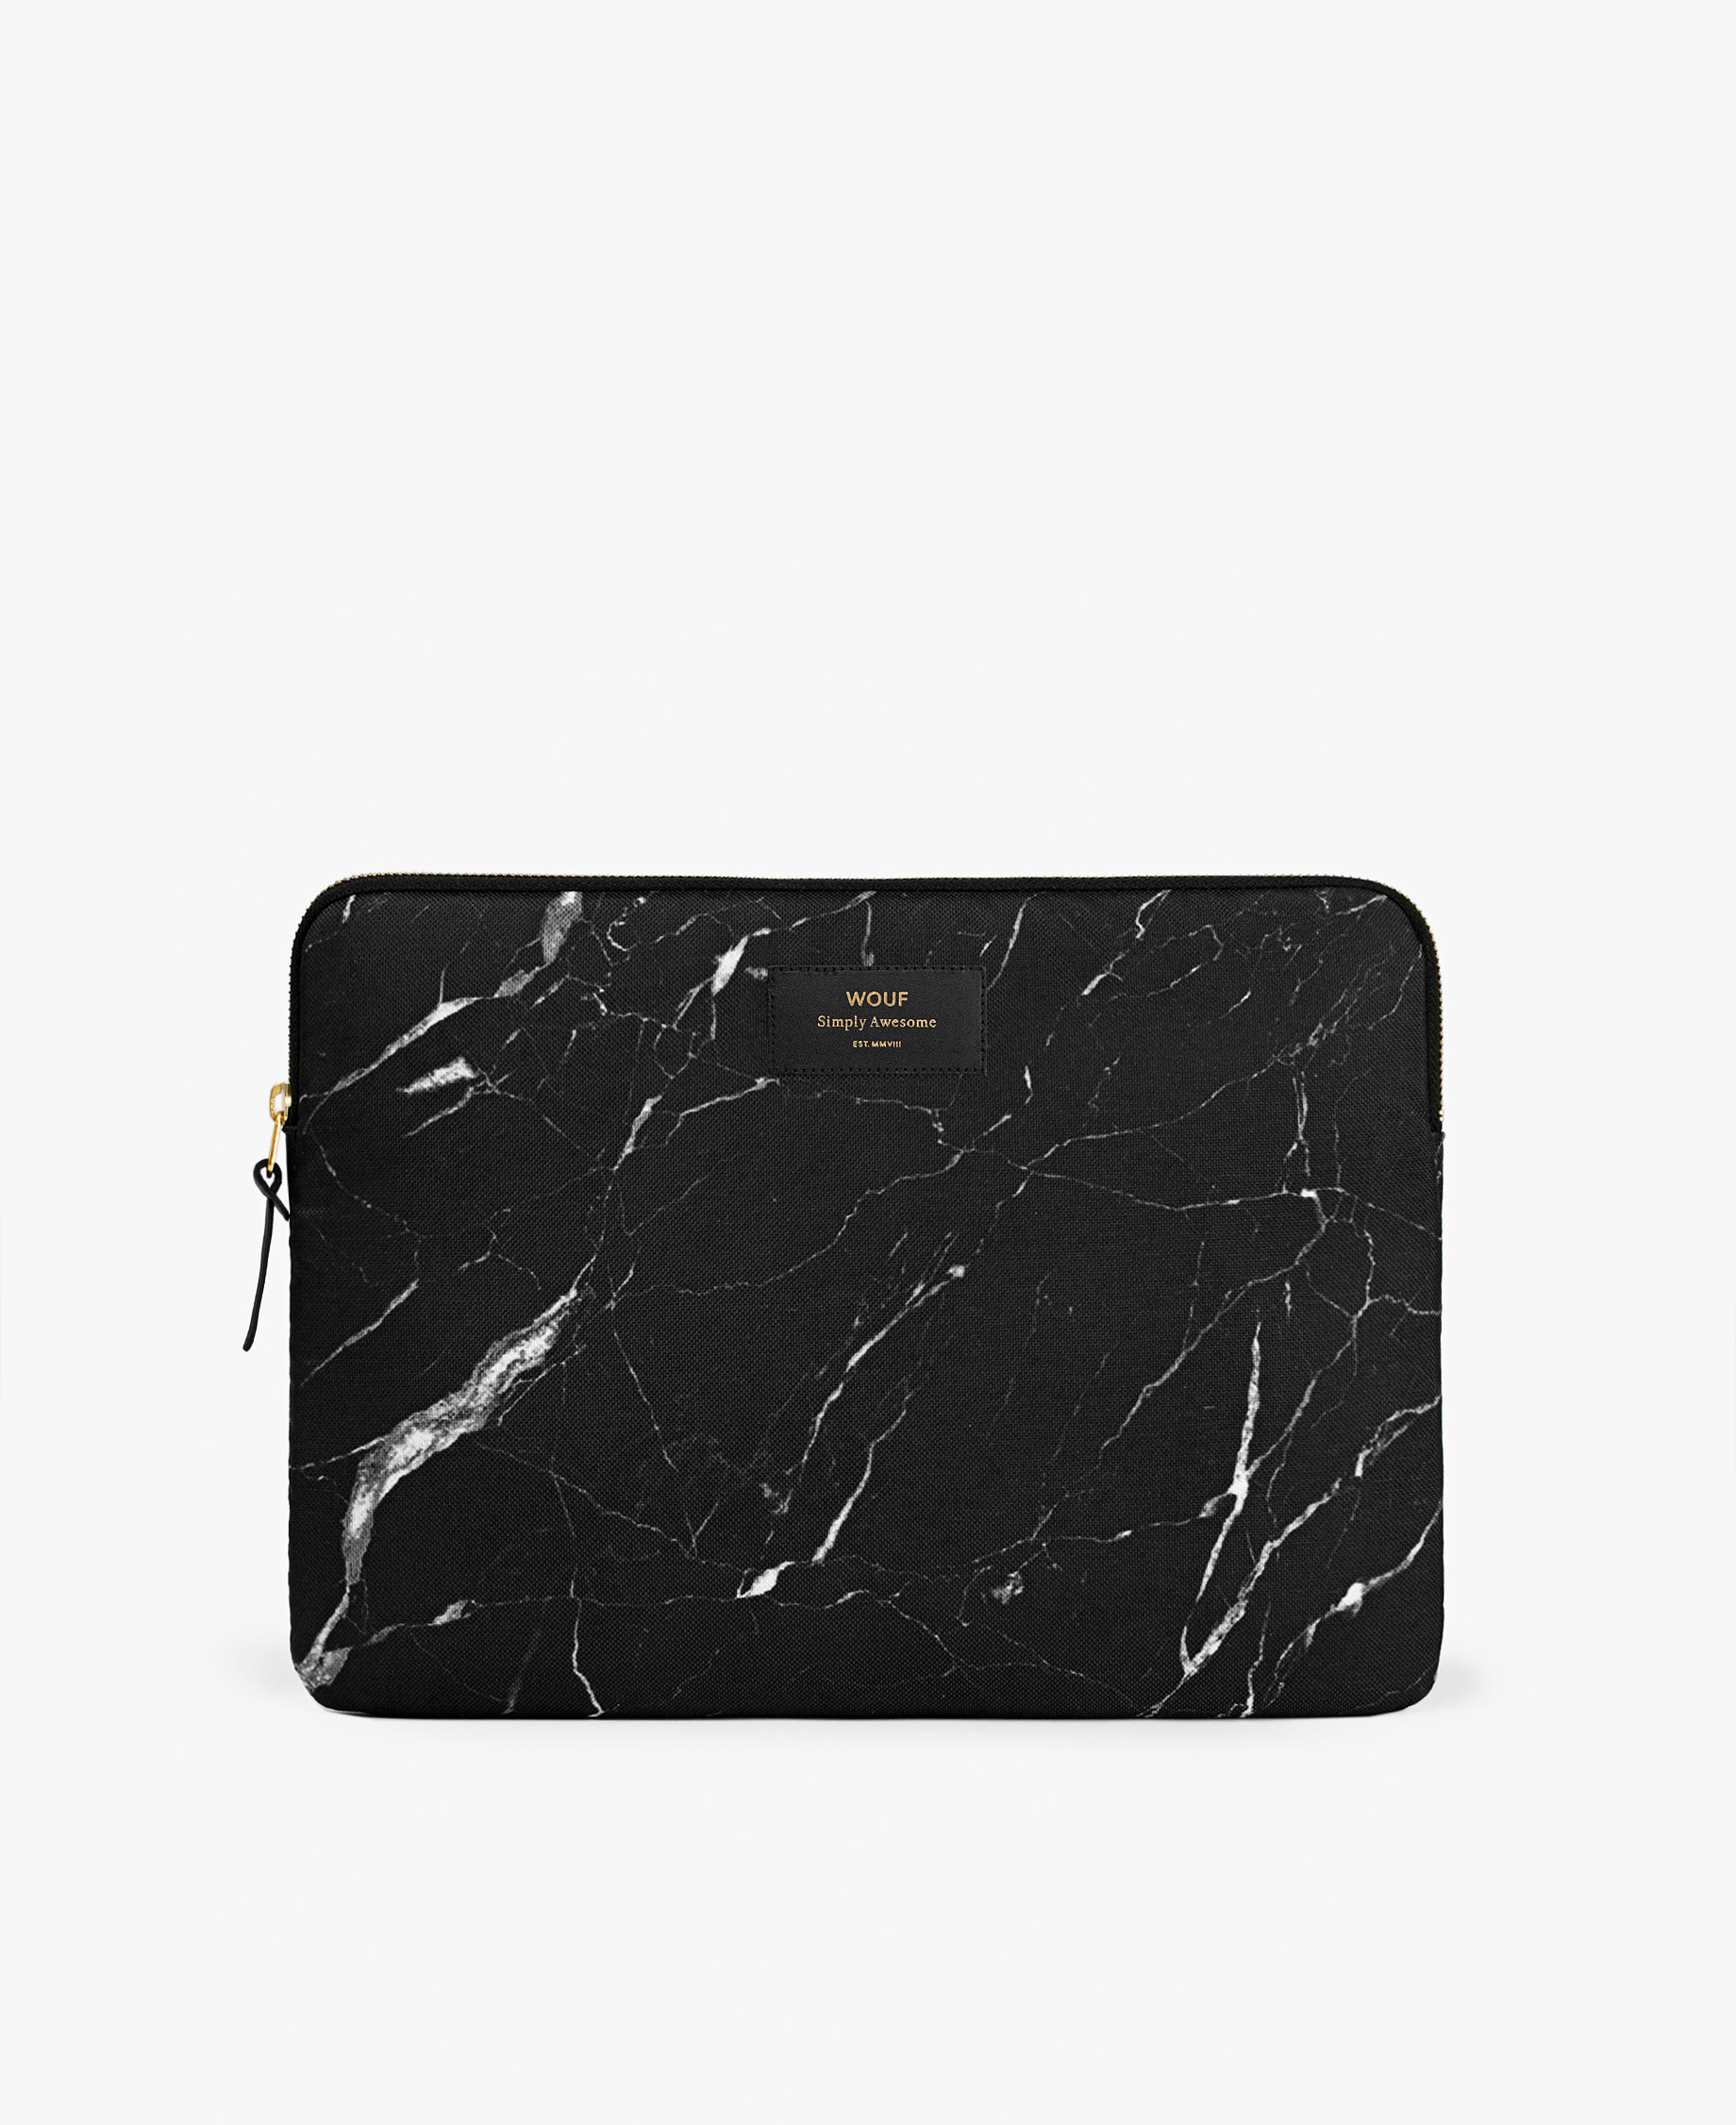 black laptop cover